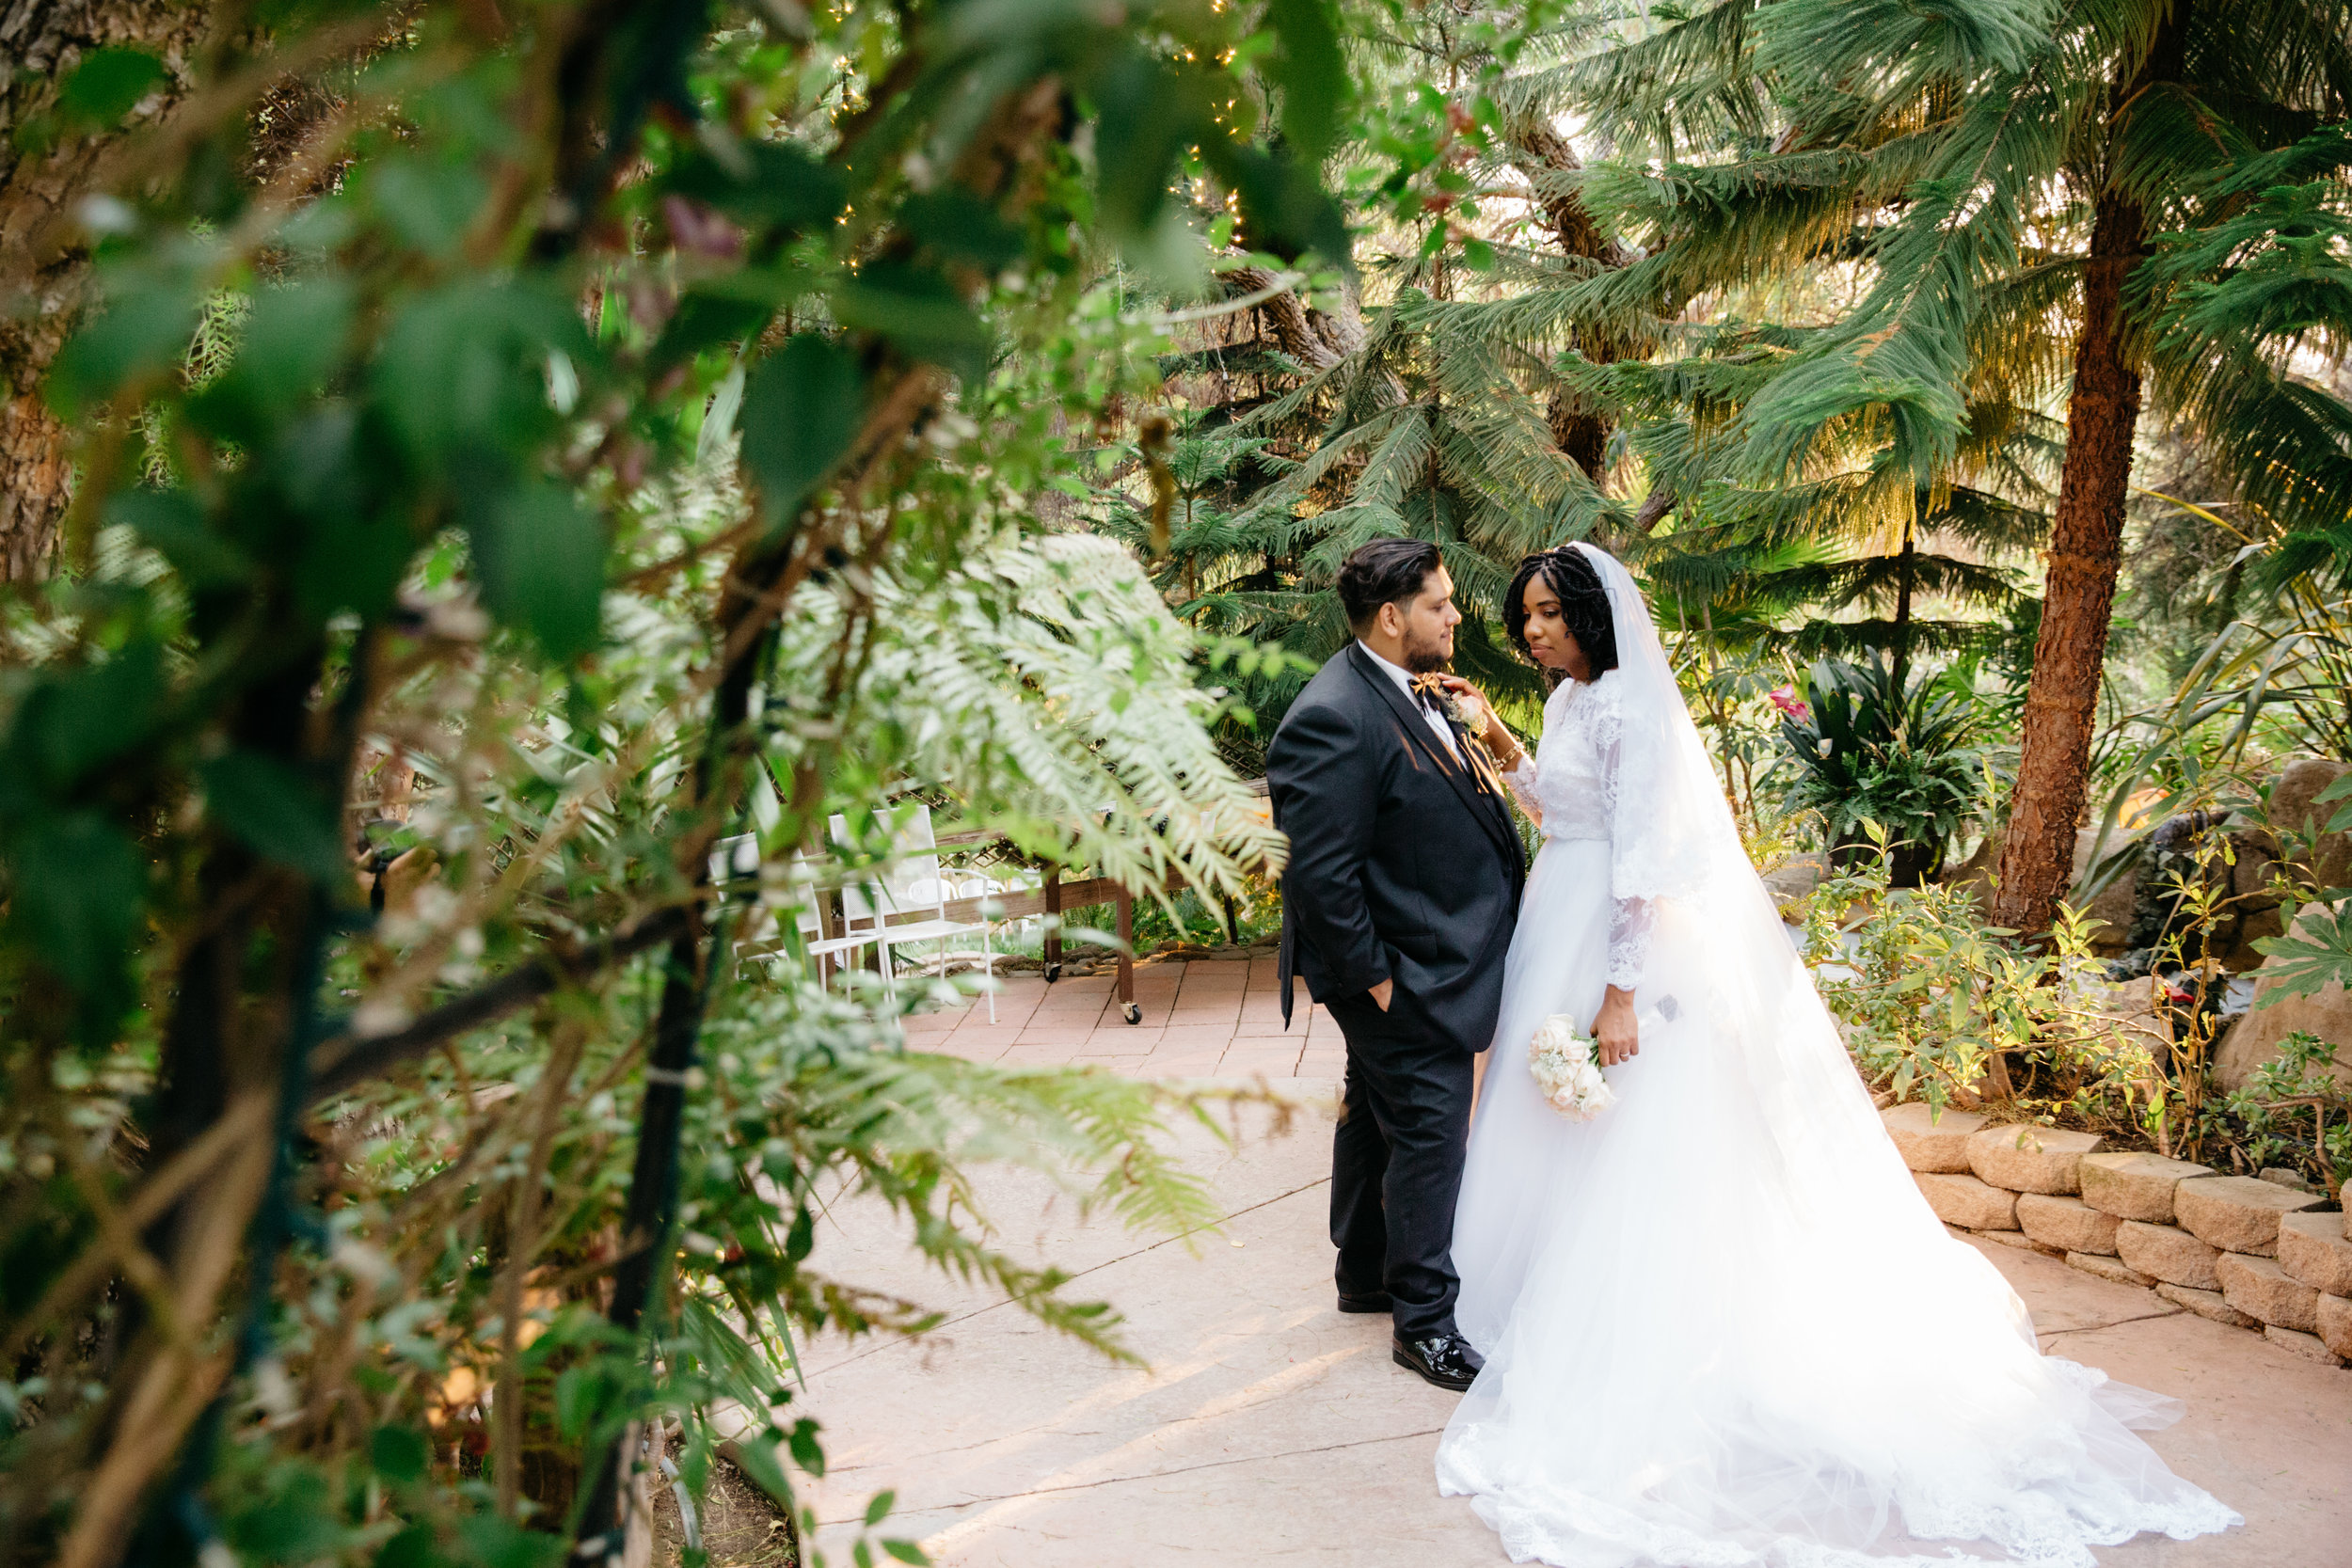 The Vineyard Wedding Jenna Bells and Laces Photography-39.jpg